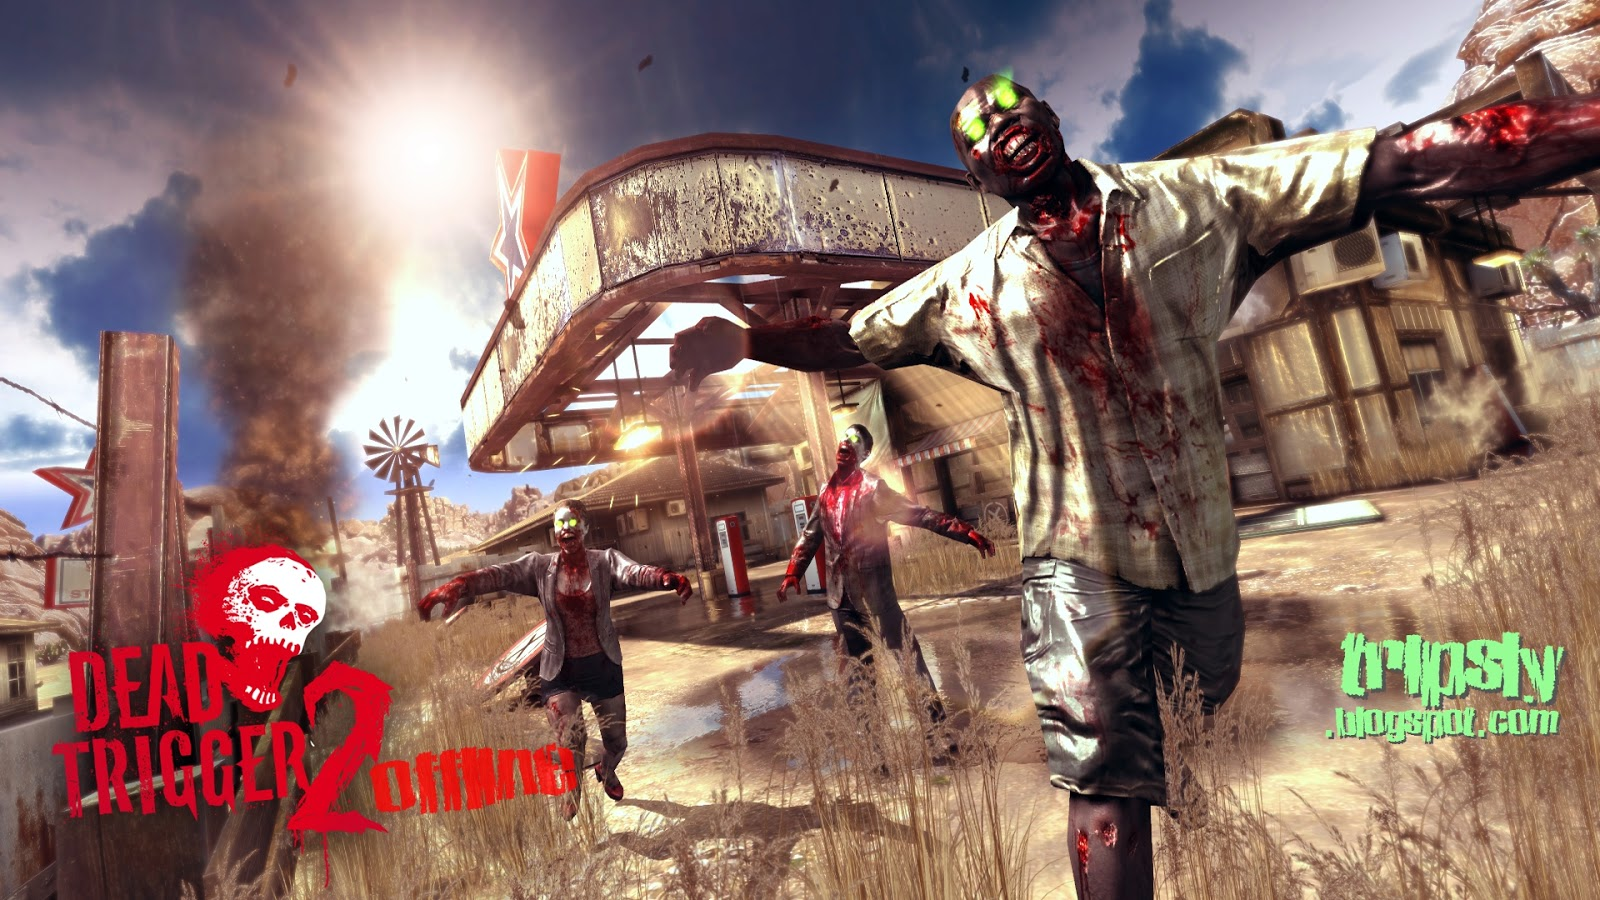 Dead trigger 2 offline the reason behind tripsly youll know we all want to play a great fps game when we are travelling somewhere and we get bored but madfinger games didnt think so the game dead trigger first malvernweather Choice Image